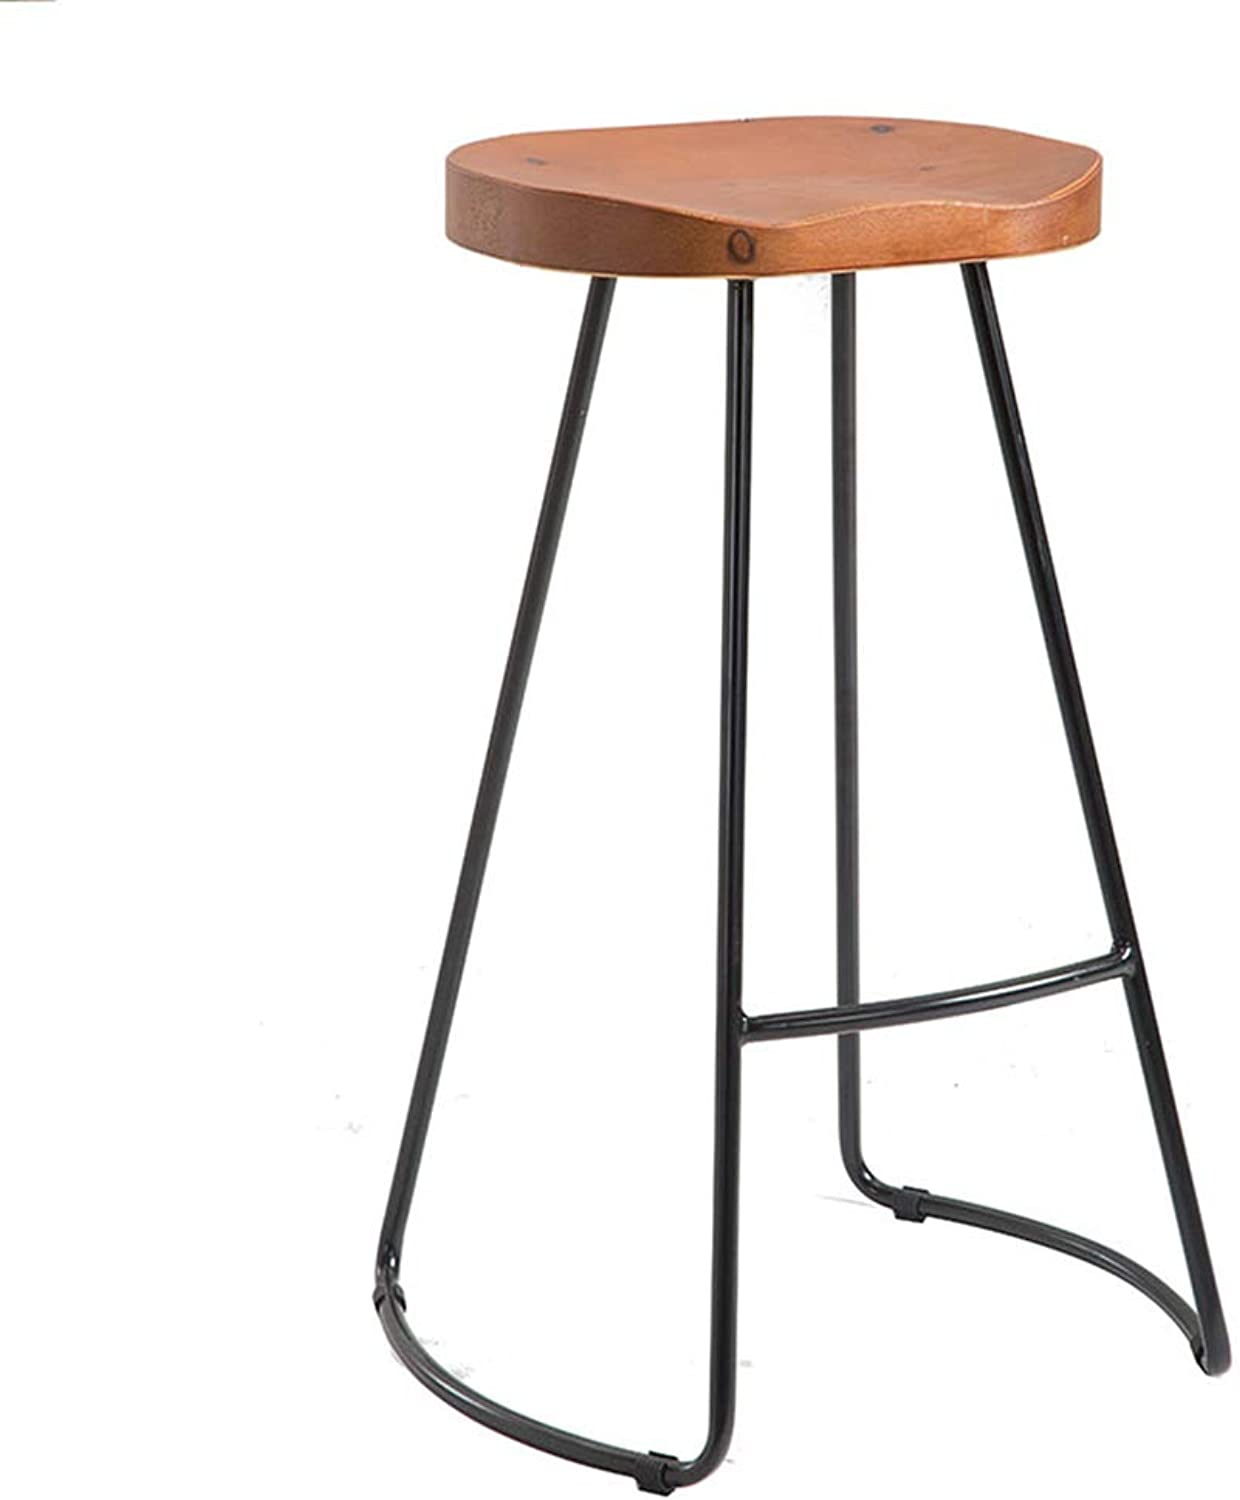 LJFYXZ Bar Stool Simple Solid Wood Cushion Iron Bracket Can Rest on The feet Durable 75cm high Wood color